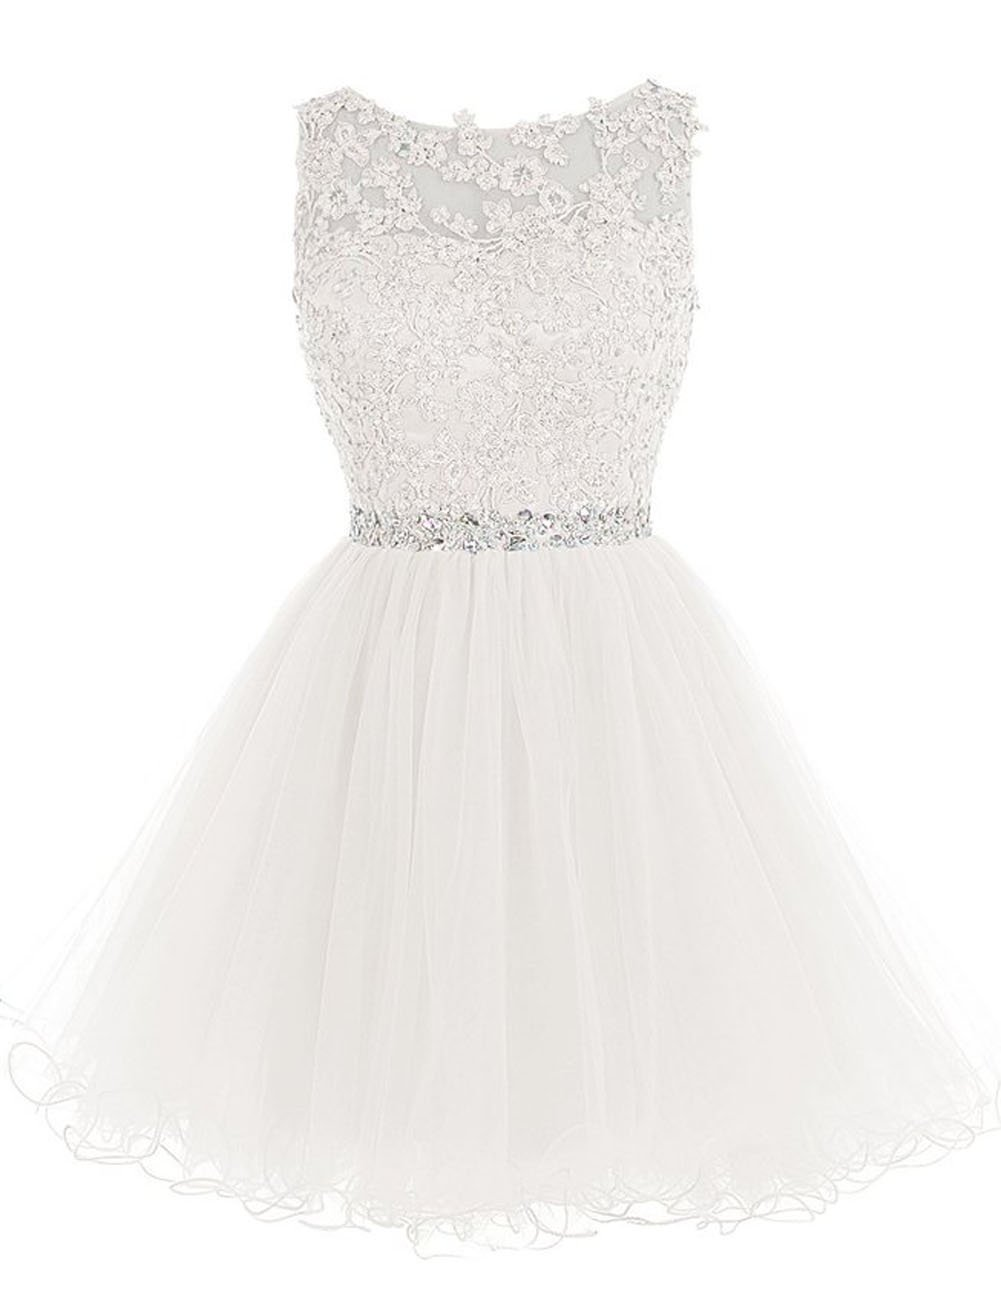 Cdress Short Tulle Homecoming Dresses Appliques Beads Cocktail Dress Prom Gowns Ivory US 6